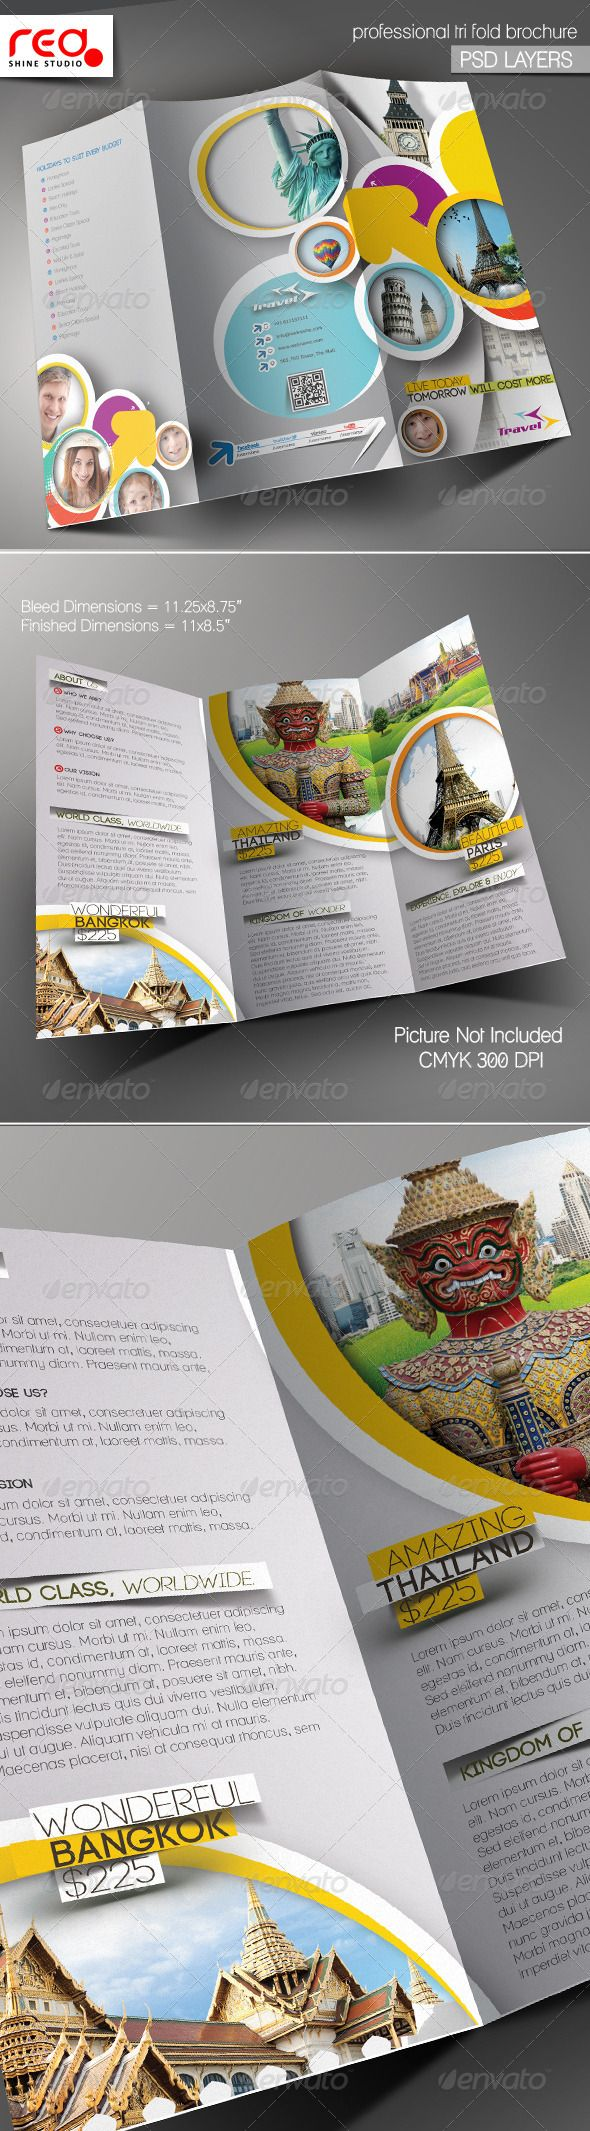 Travel Agency Trifold Brochure Template #GraphicRiver SPECIFICATION Trifold Brochure Template is 8 by 11 in (8.75 in by 11.25 in with bleeds) and is ready for print, because it's in CMYK at 300 dpi. The psd file can be edited in Photoshop, and to be simple able to change the text. 2 Layered Photoshop file in zip folders with editable text and Simple to Customize. replace colours, text, add images your logos, etc. Help file included Font Info :- Font Name :- Lane, signika, Code social-logos…